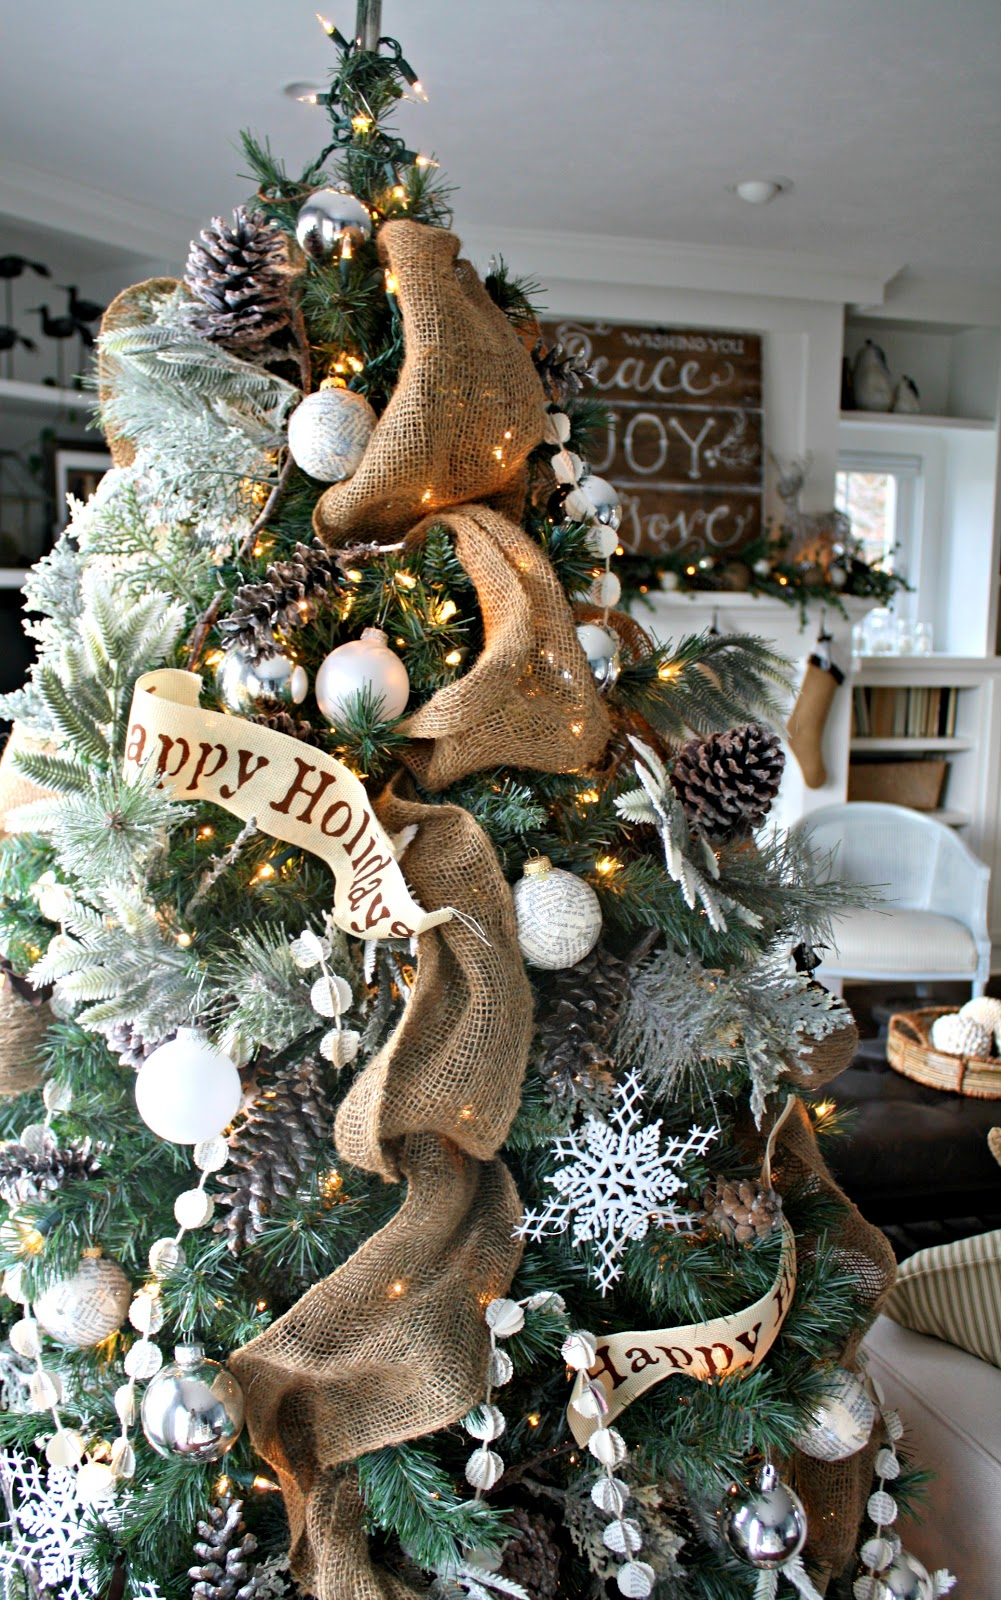 O Christmas Tree - The Lilypad Cottage